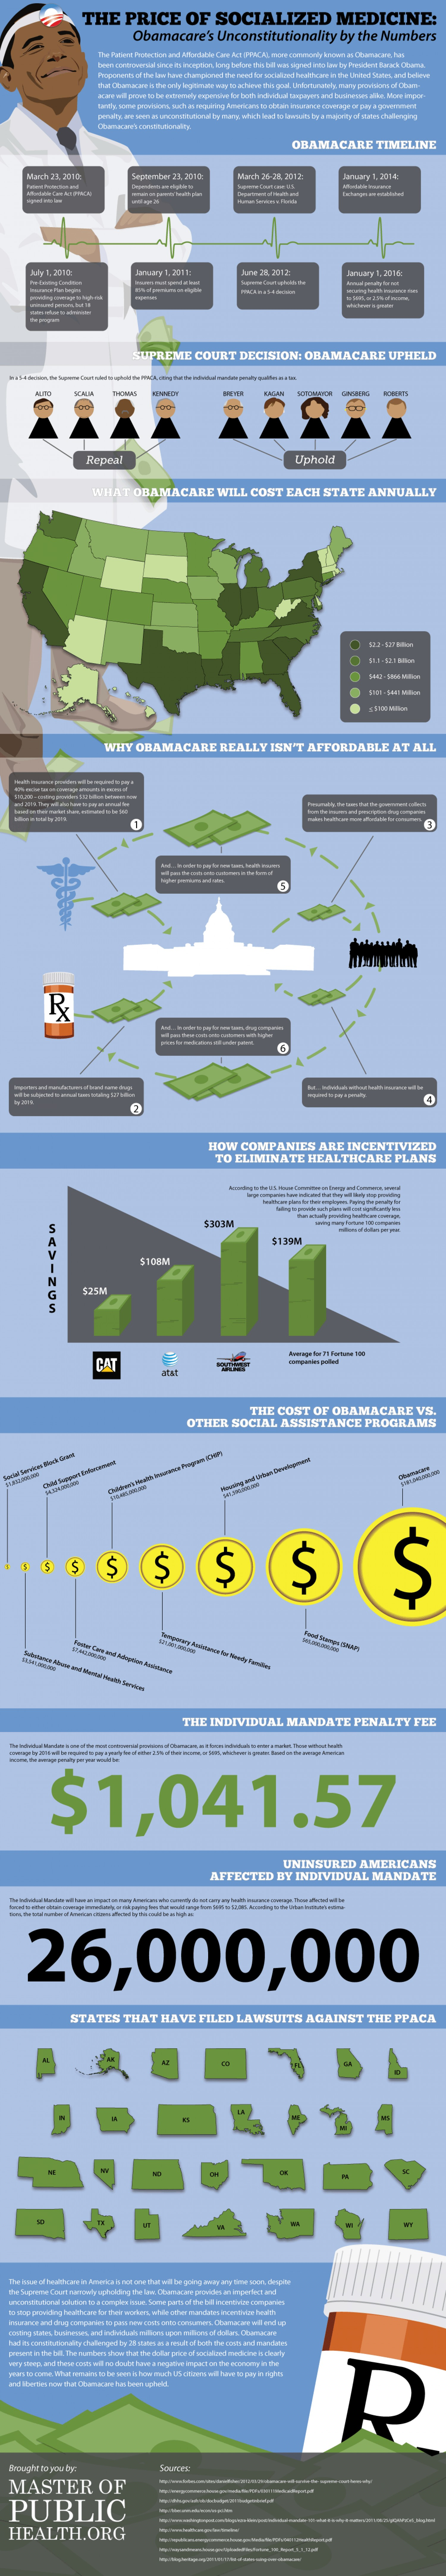 The Cost of Socialized Medicine: Obamacare's Unconstitutionality by the Numbers